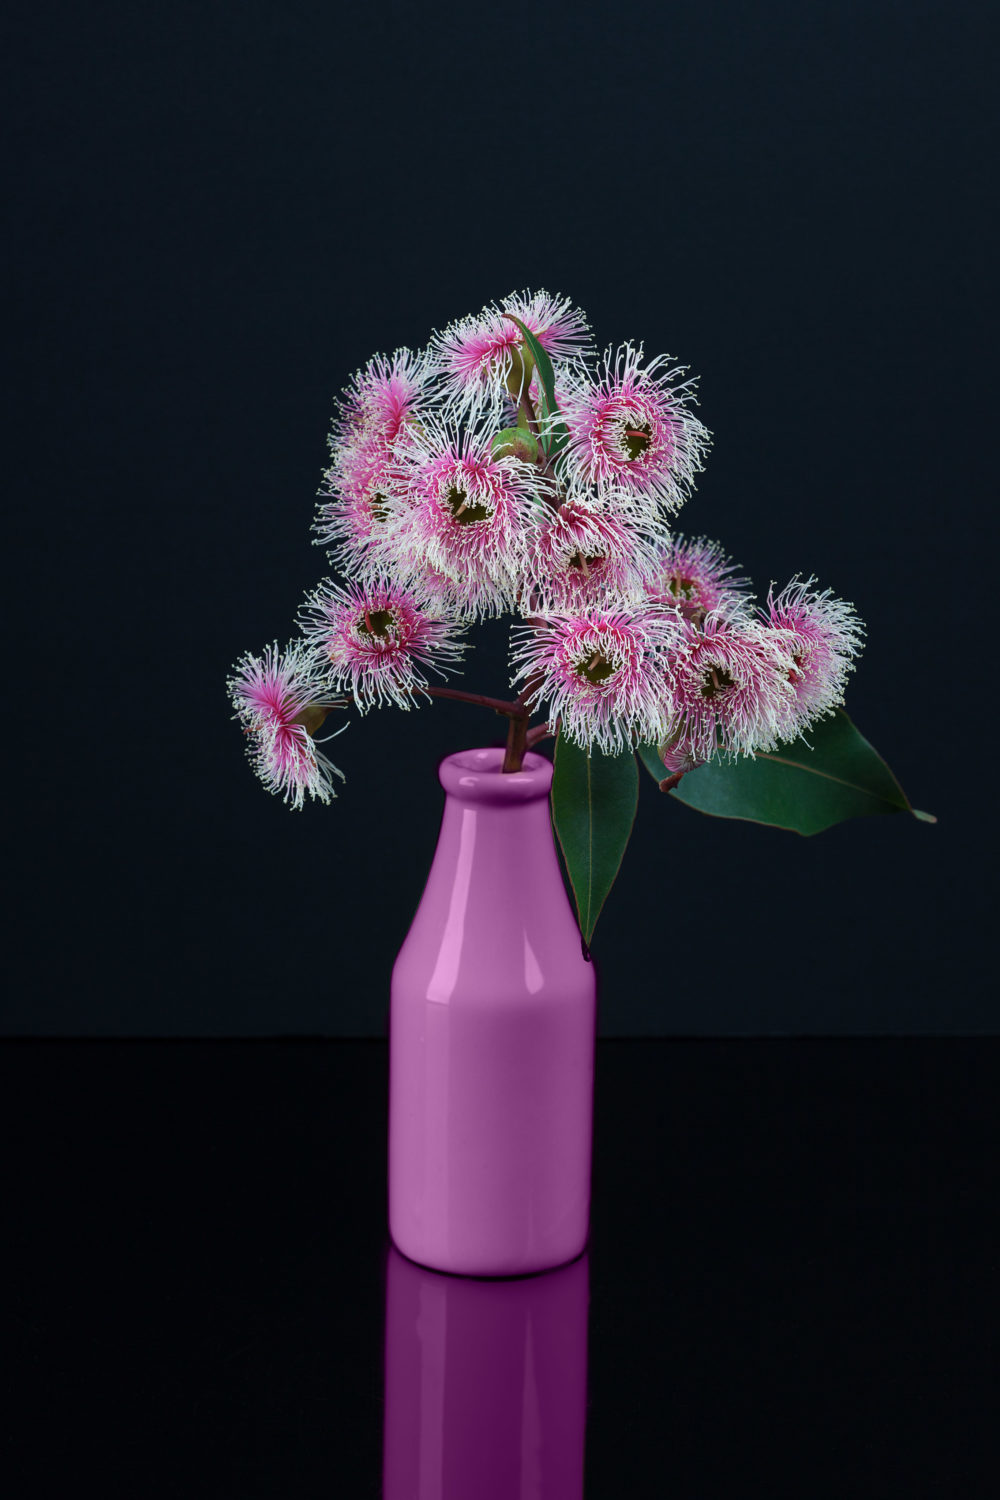 Elegant bouquet of white pink Eucalyptus flowers in a purple bottle isolated on black background